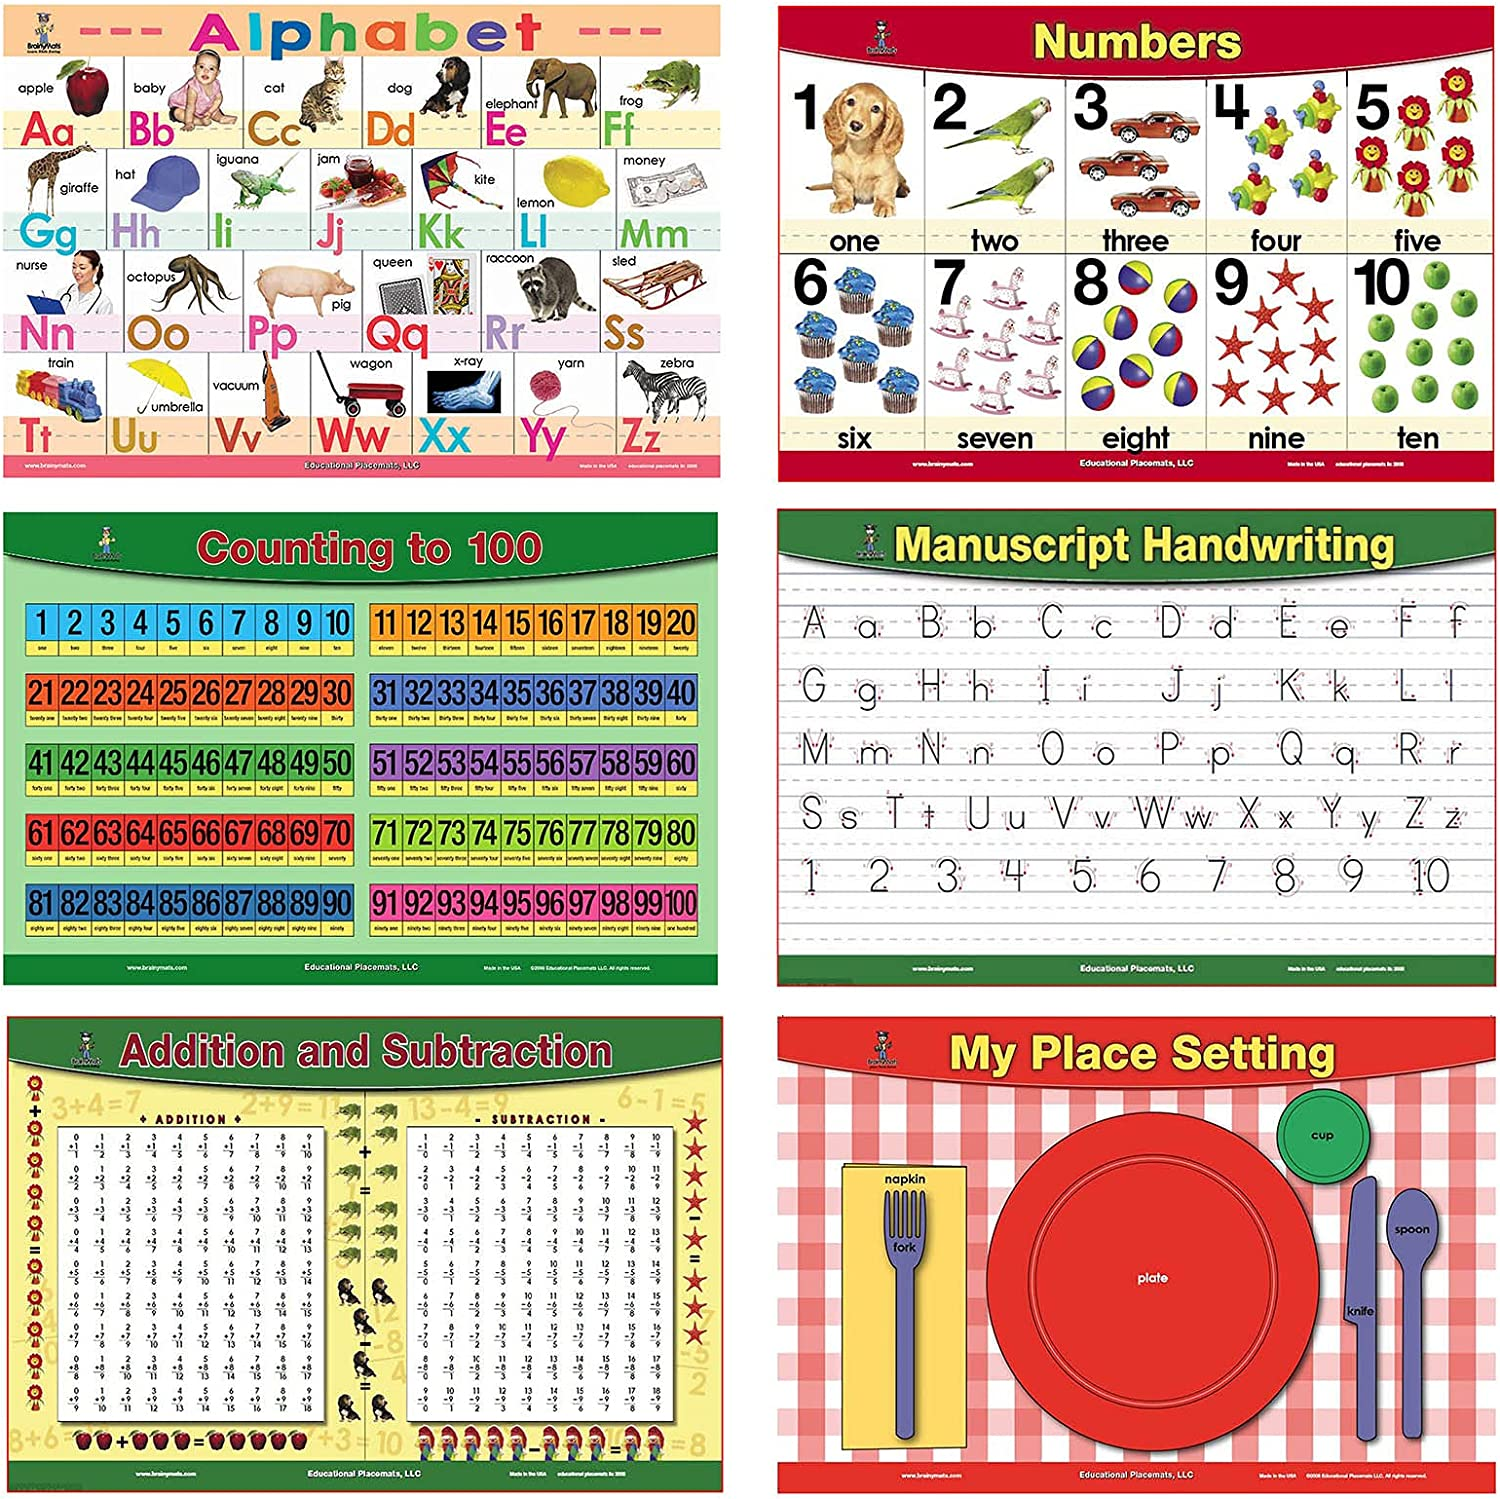 Brainymats Educational Placemats for Kids (Basic Skills Set of 6 Mats) Alphabet Mat and More-Easy Clean Plastic Learning Table Mat for Kids with Colorful Pictures – Ideal for Kids Learning